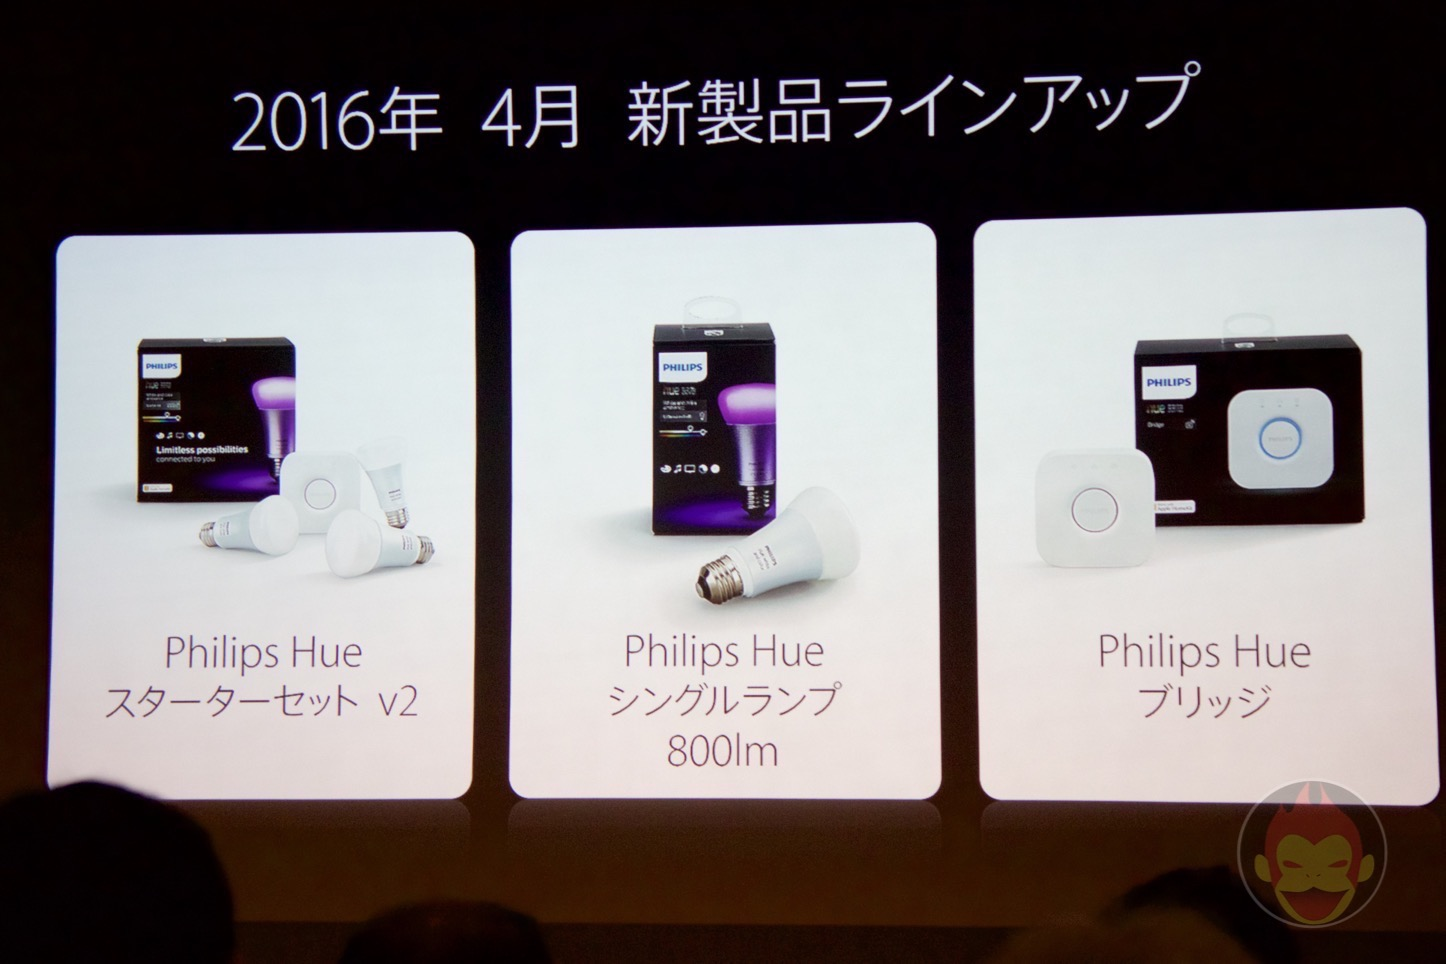 Philips-Hue-Apple-Store-Ginza-Event-01.jpg